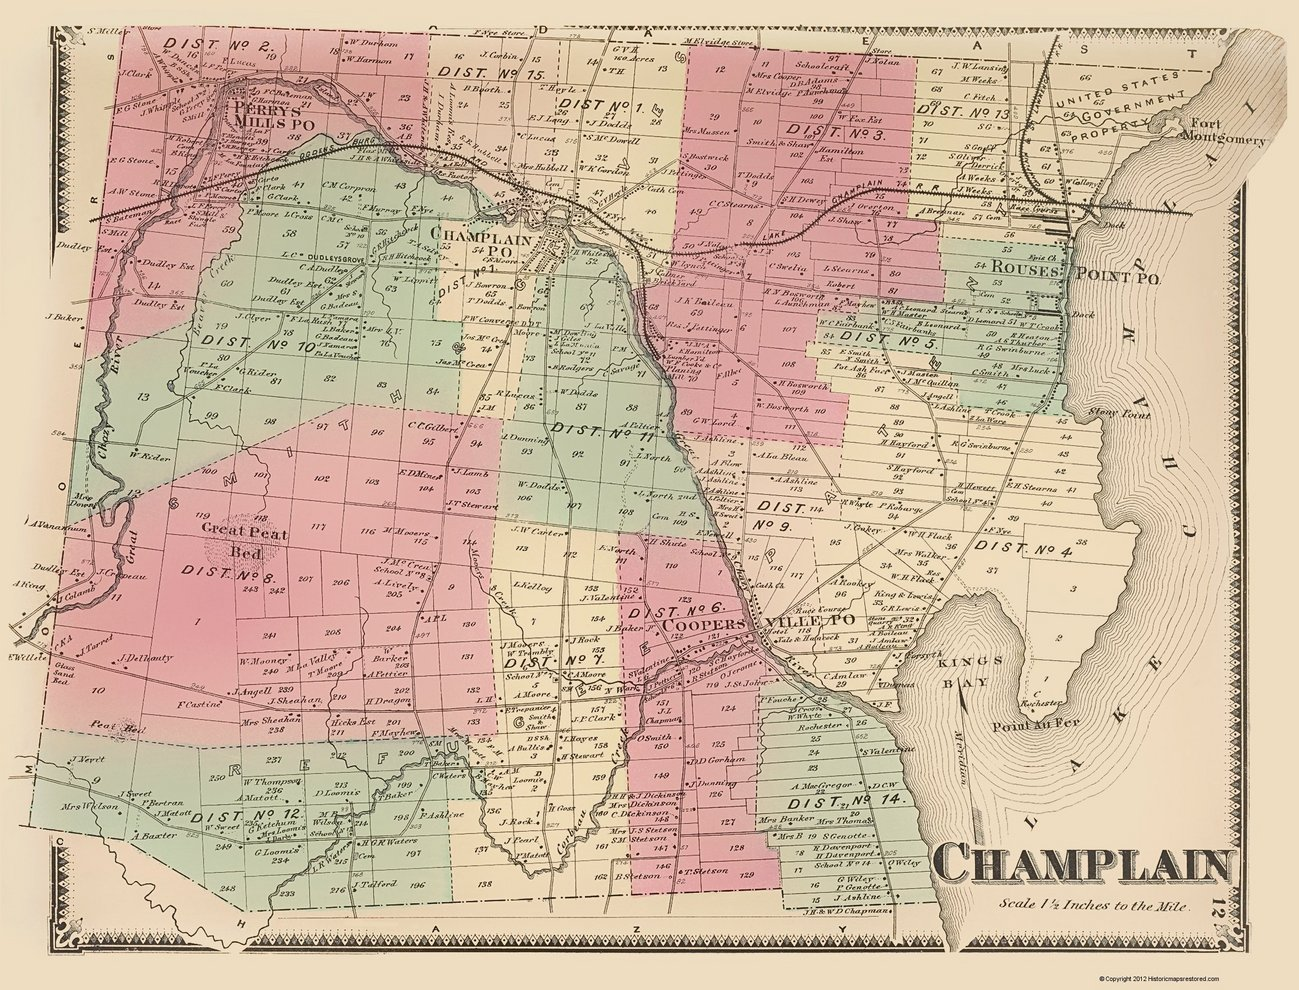 New York Kings County Township Map